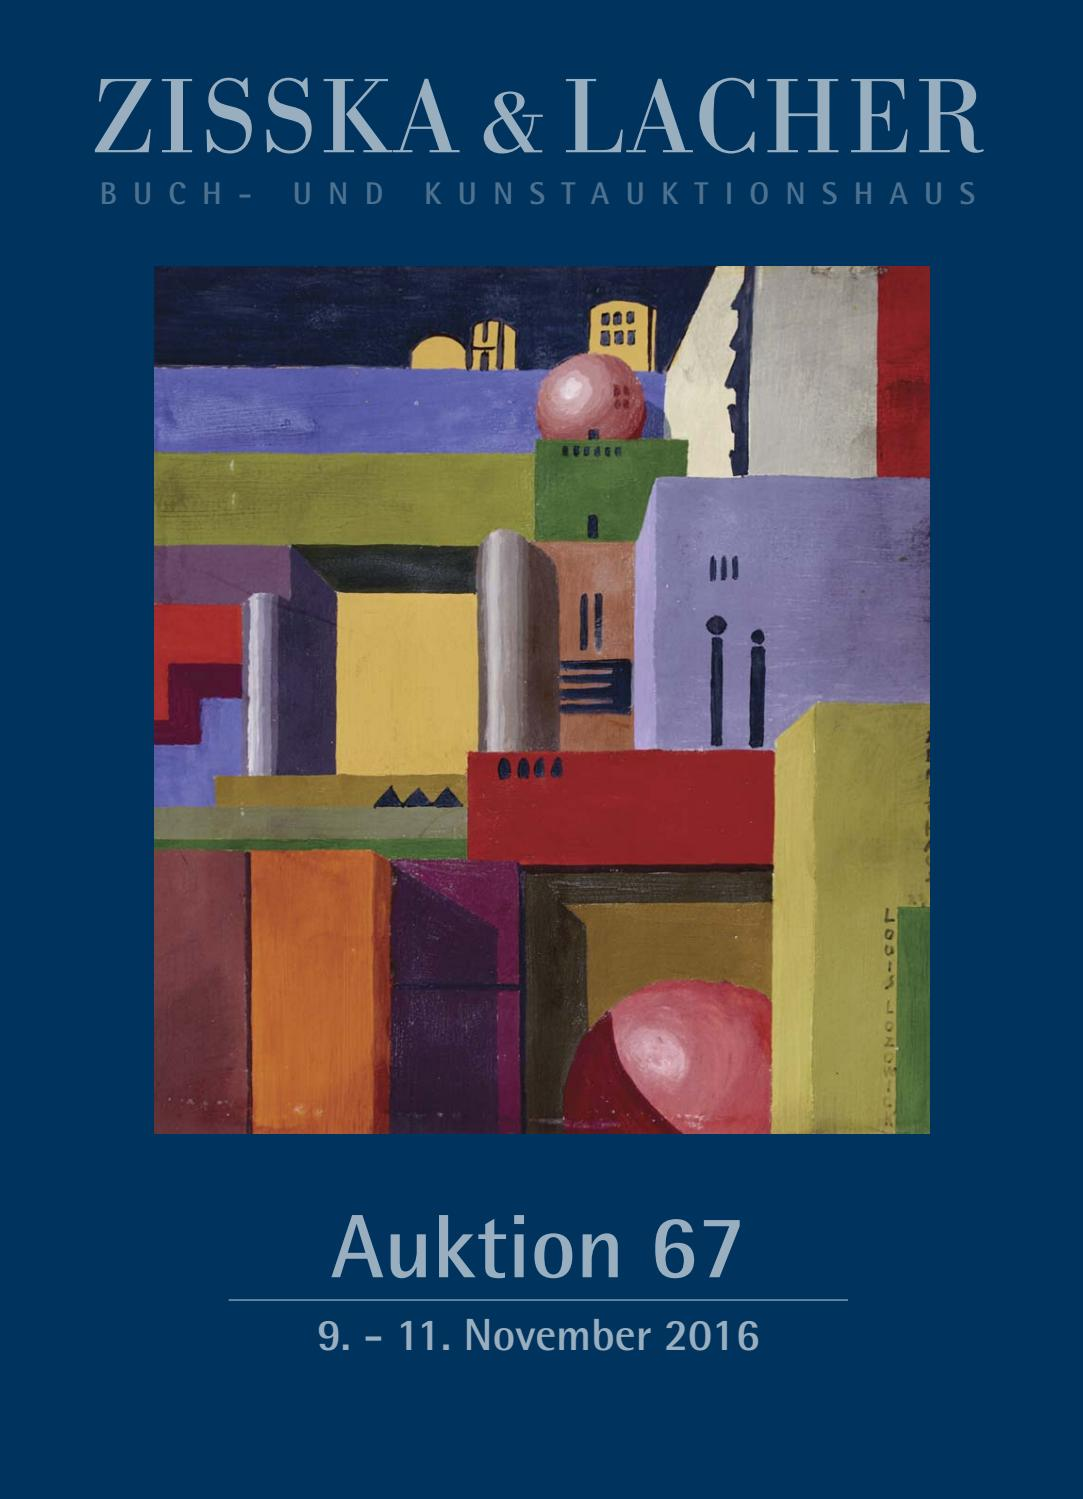 Zisska & Lacher - Auktion 67, November 2016 - Teil 1 - auction 67 ...